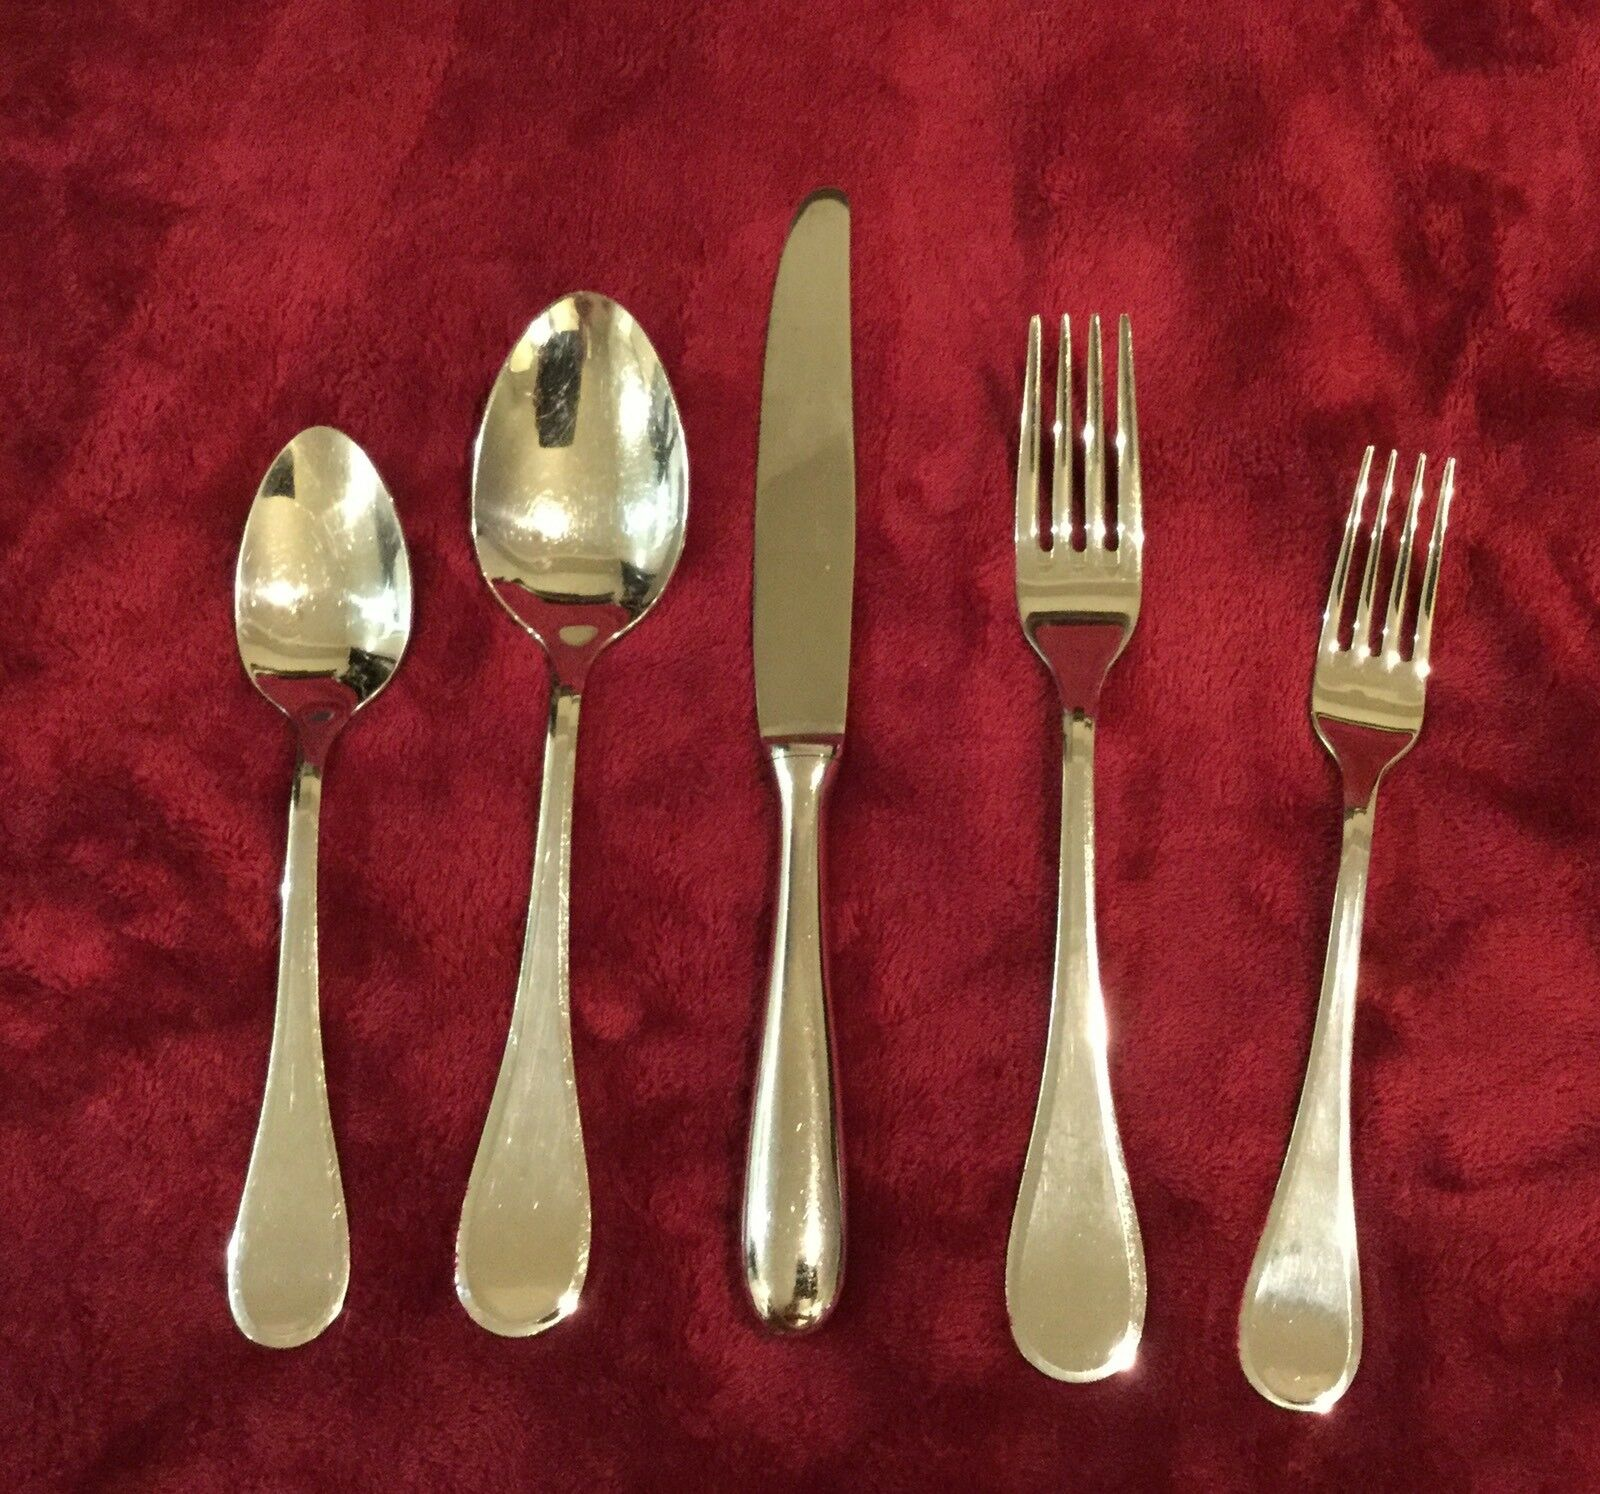 WILLIAMS SONOMA - MORGAN MORGAN MORGAN - France 18 10  YOU CHOOSE  Stainless Flatware ba1893